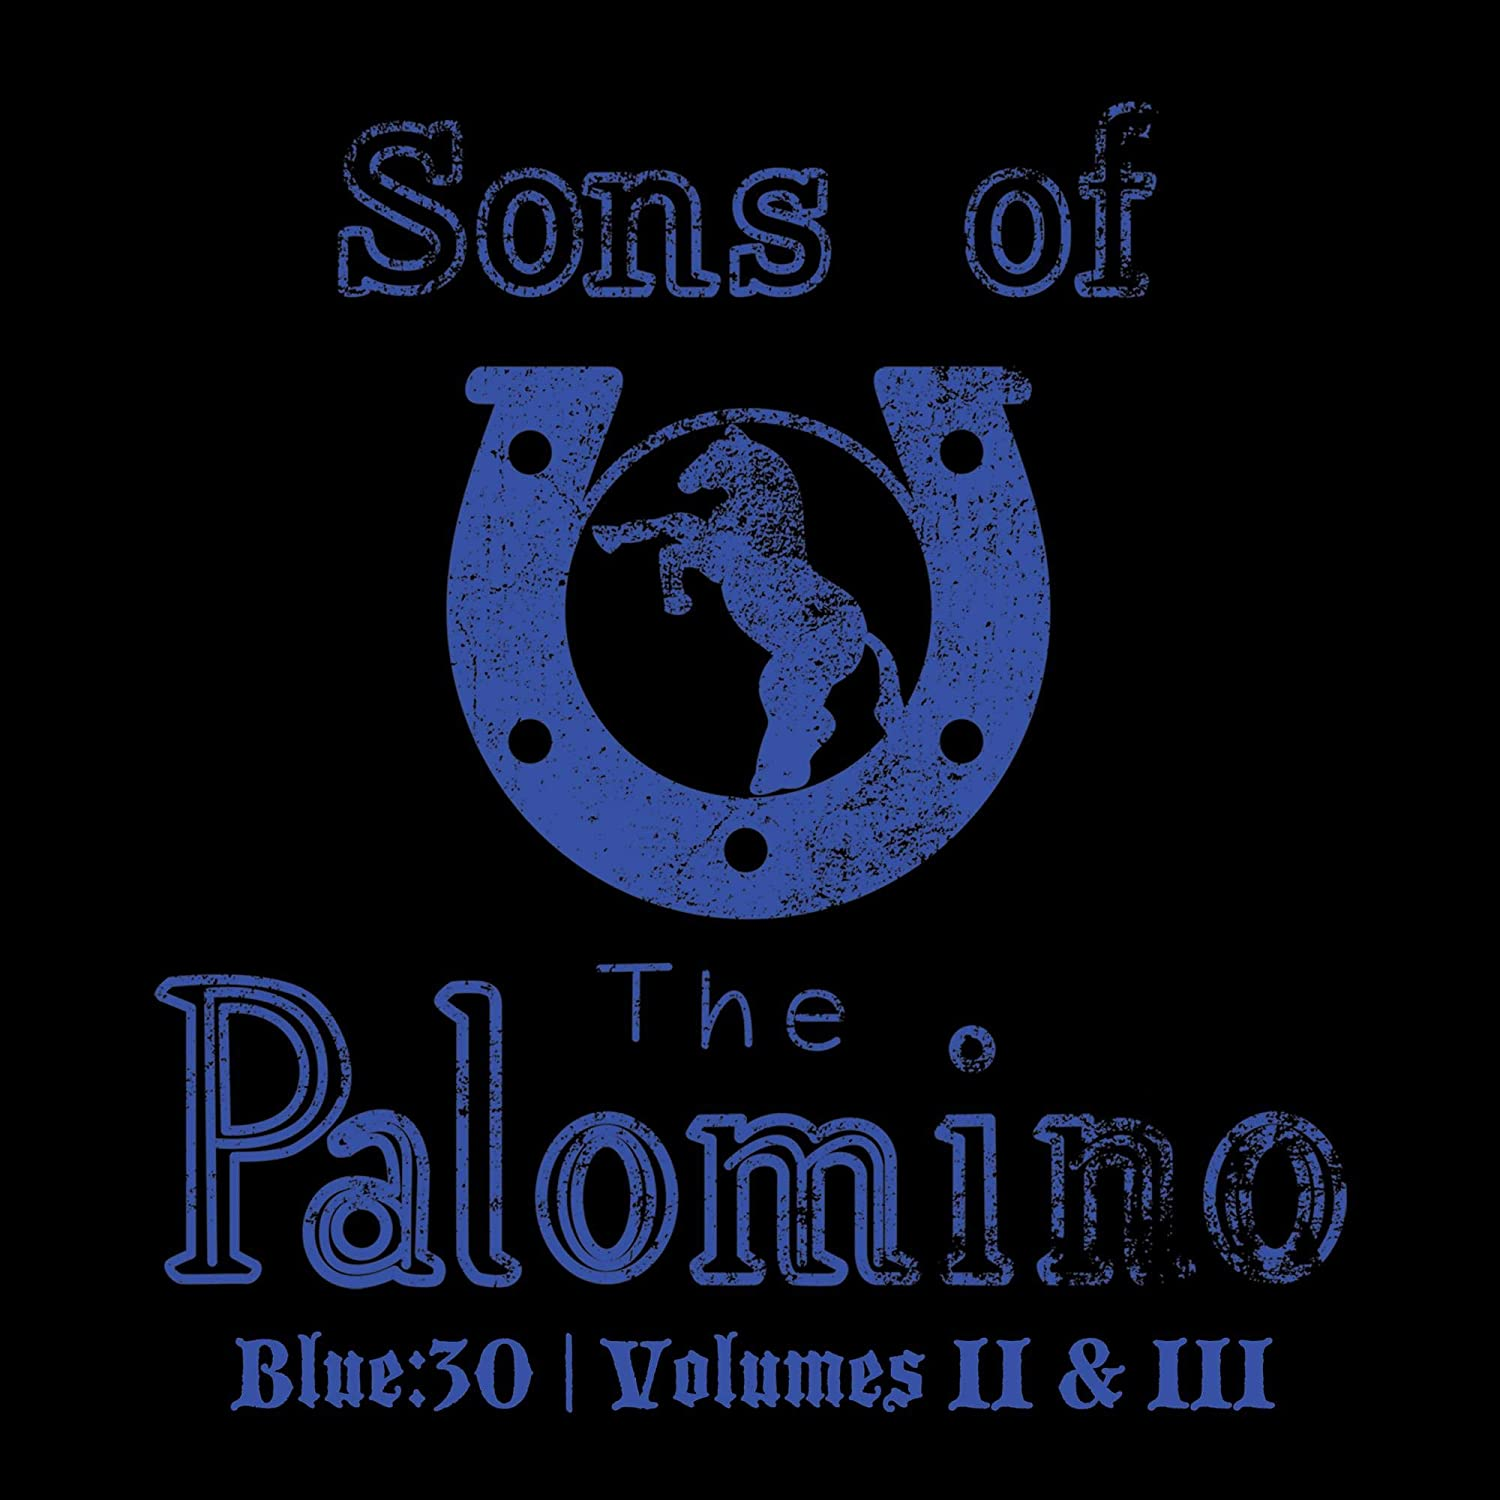 Sons Of The Palomino - Blue:30 / Volumes II & III [2CD]